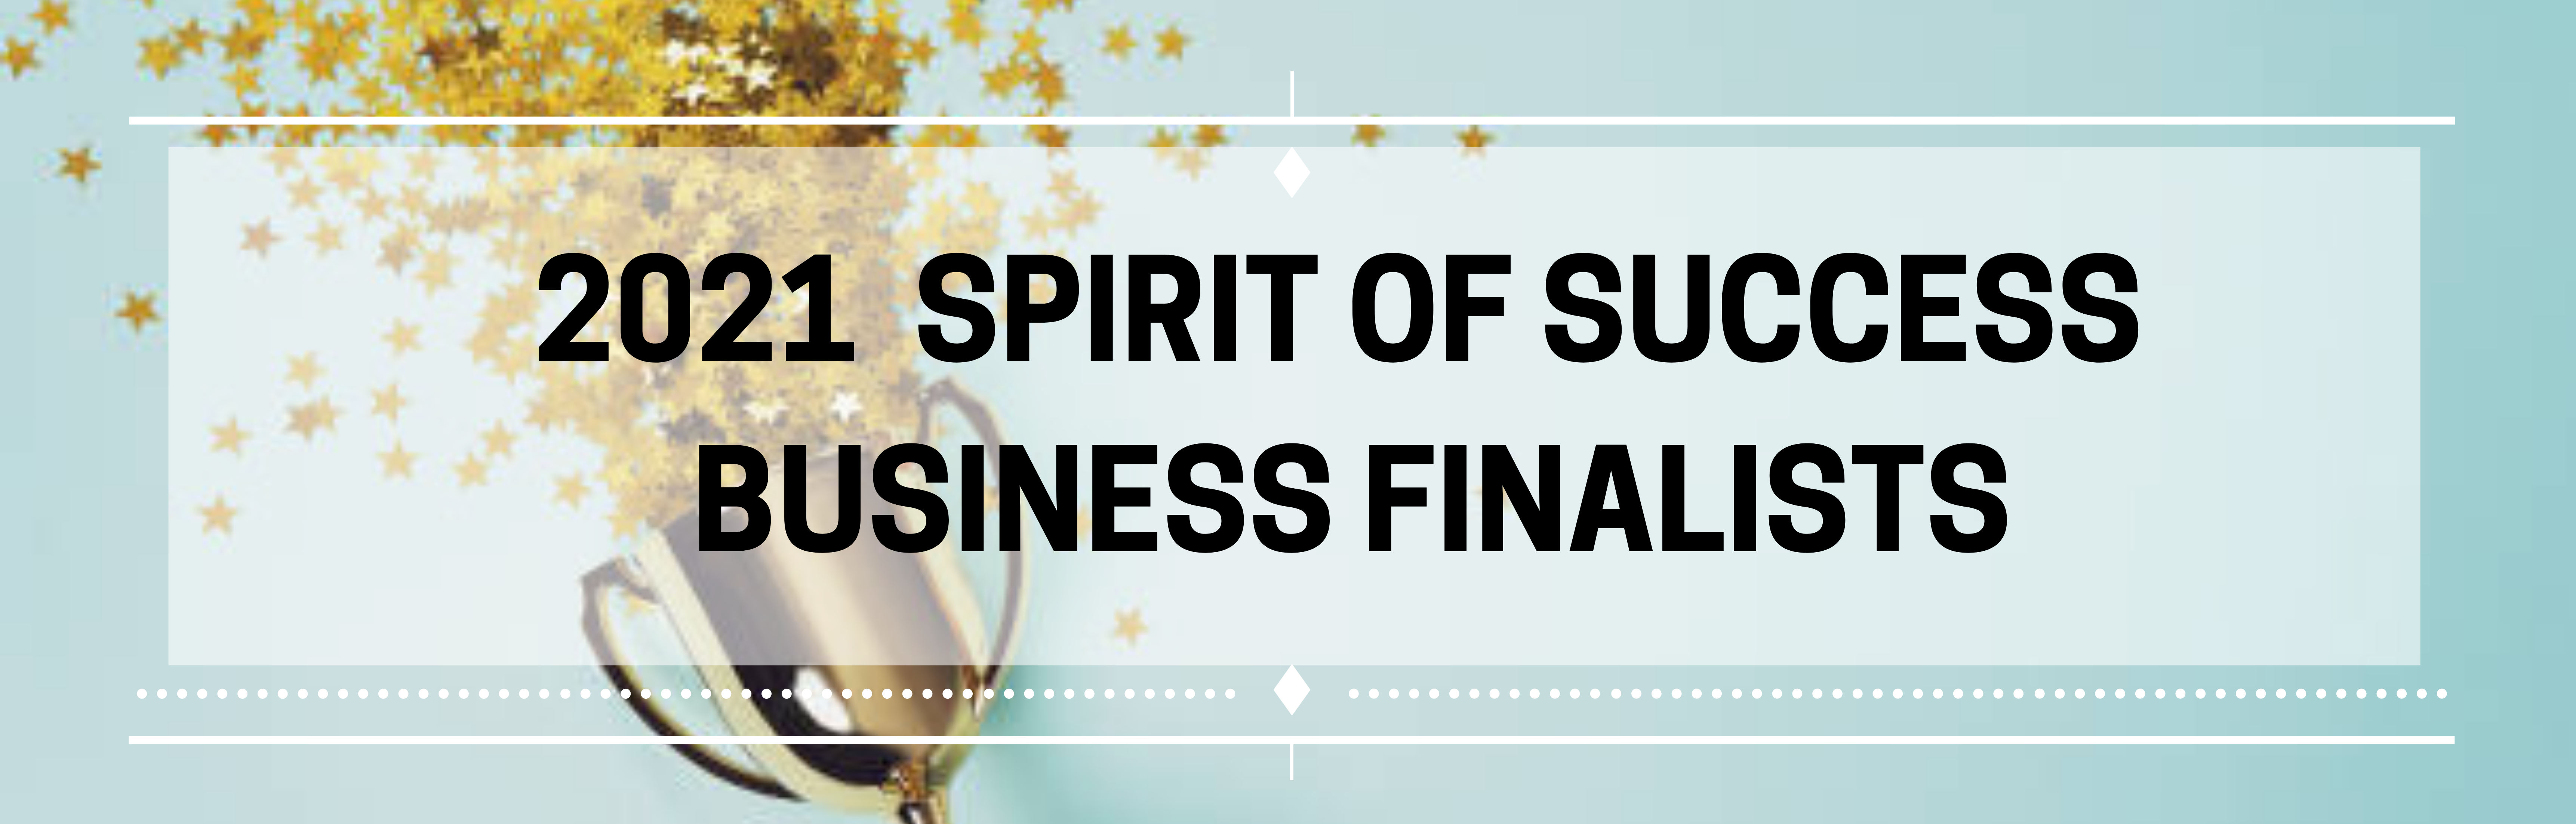 2021-Spirit-of-success-Business-Finalists(1)-w6891.png